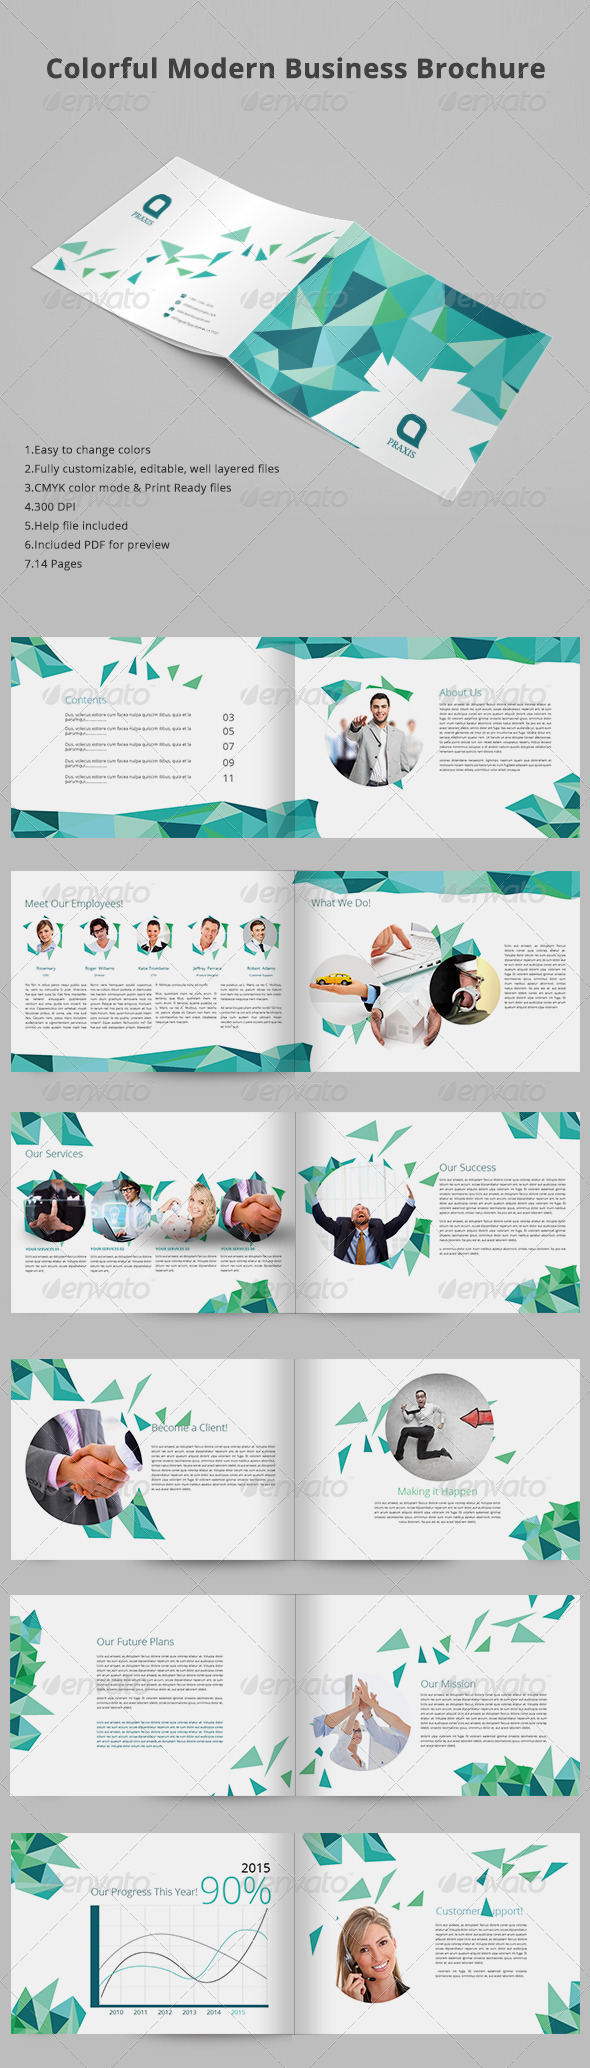 GraphicRiver Colorful Modern Business Brochure 8111868